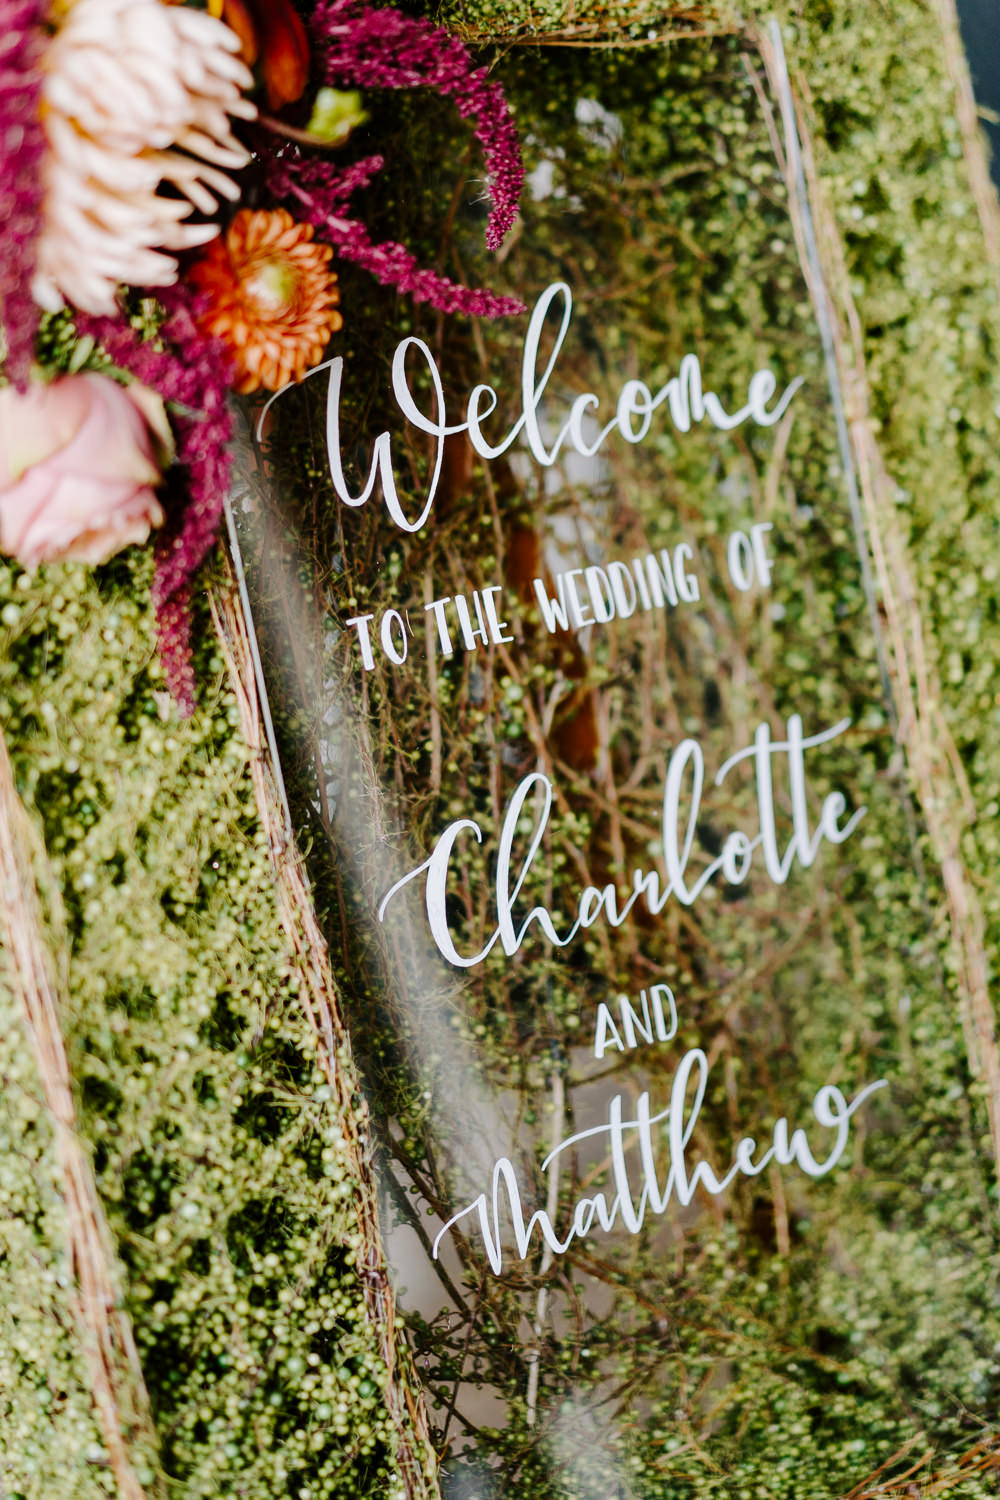 Glass Clear Perspex Acrylic Sign Signs Signage Contemporary Wedding Ideas Chloe Ely Photography